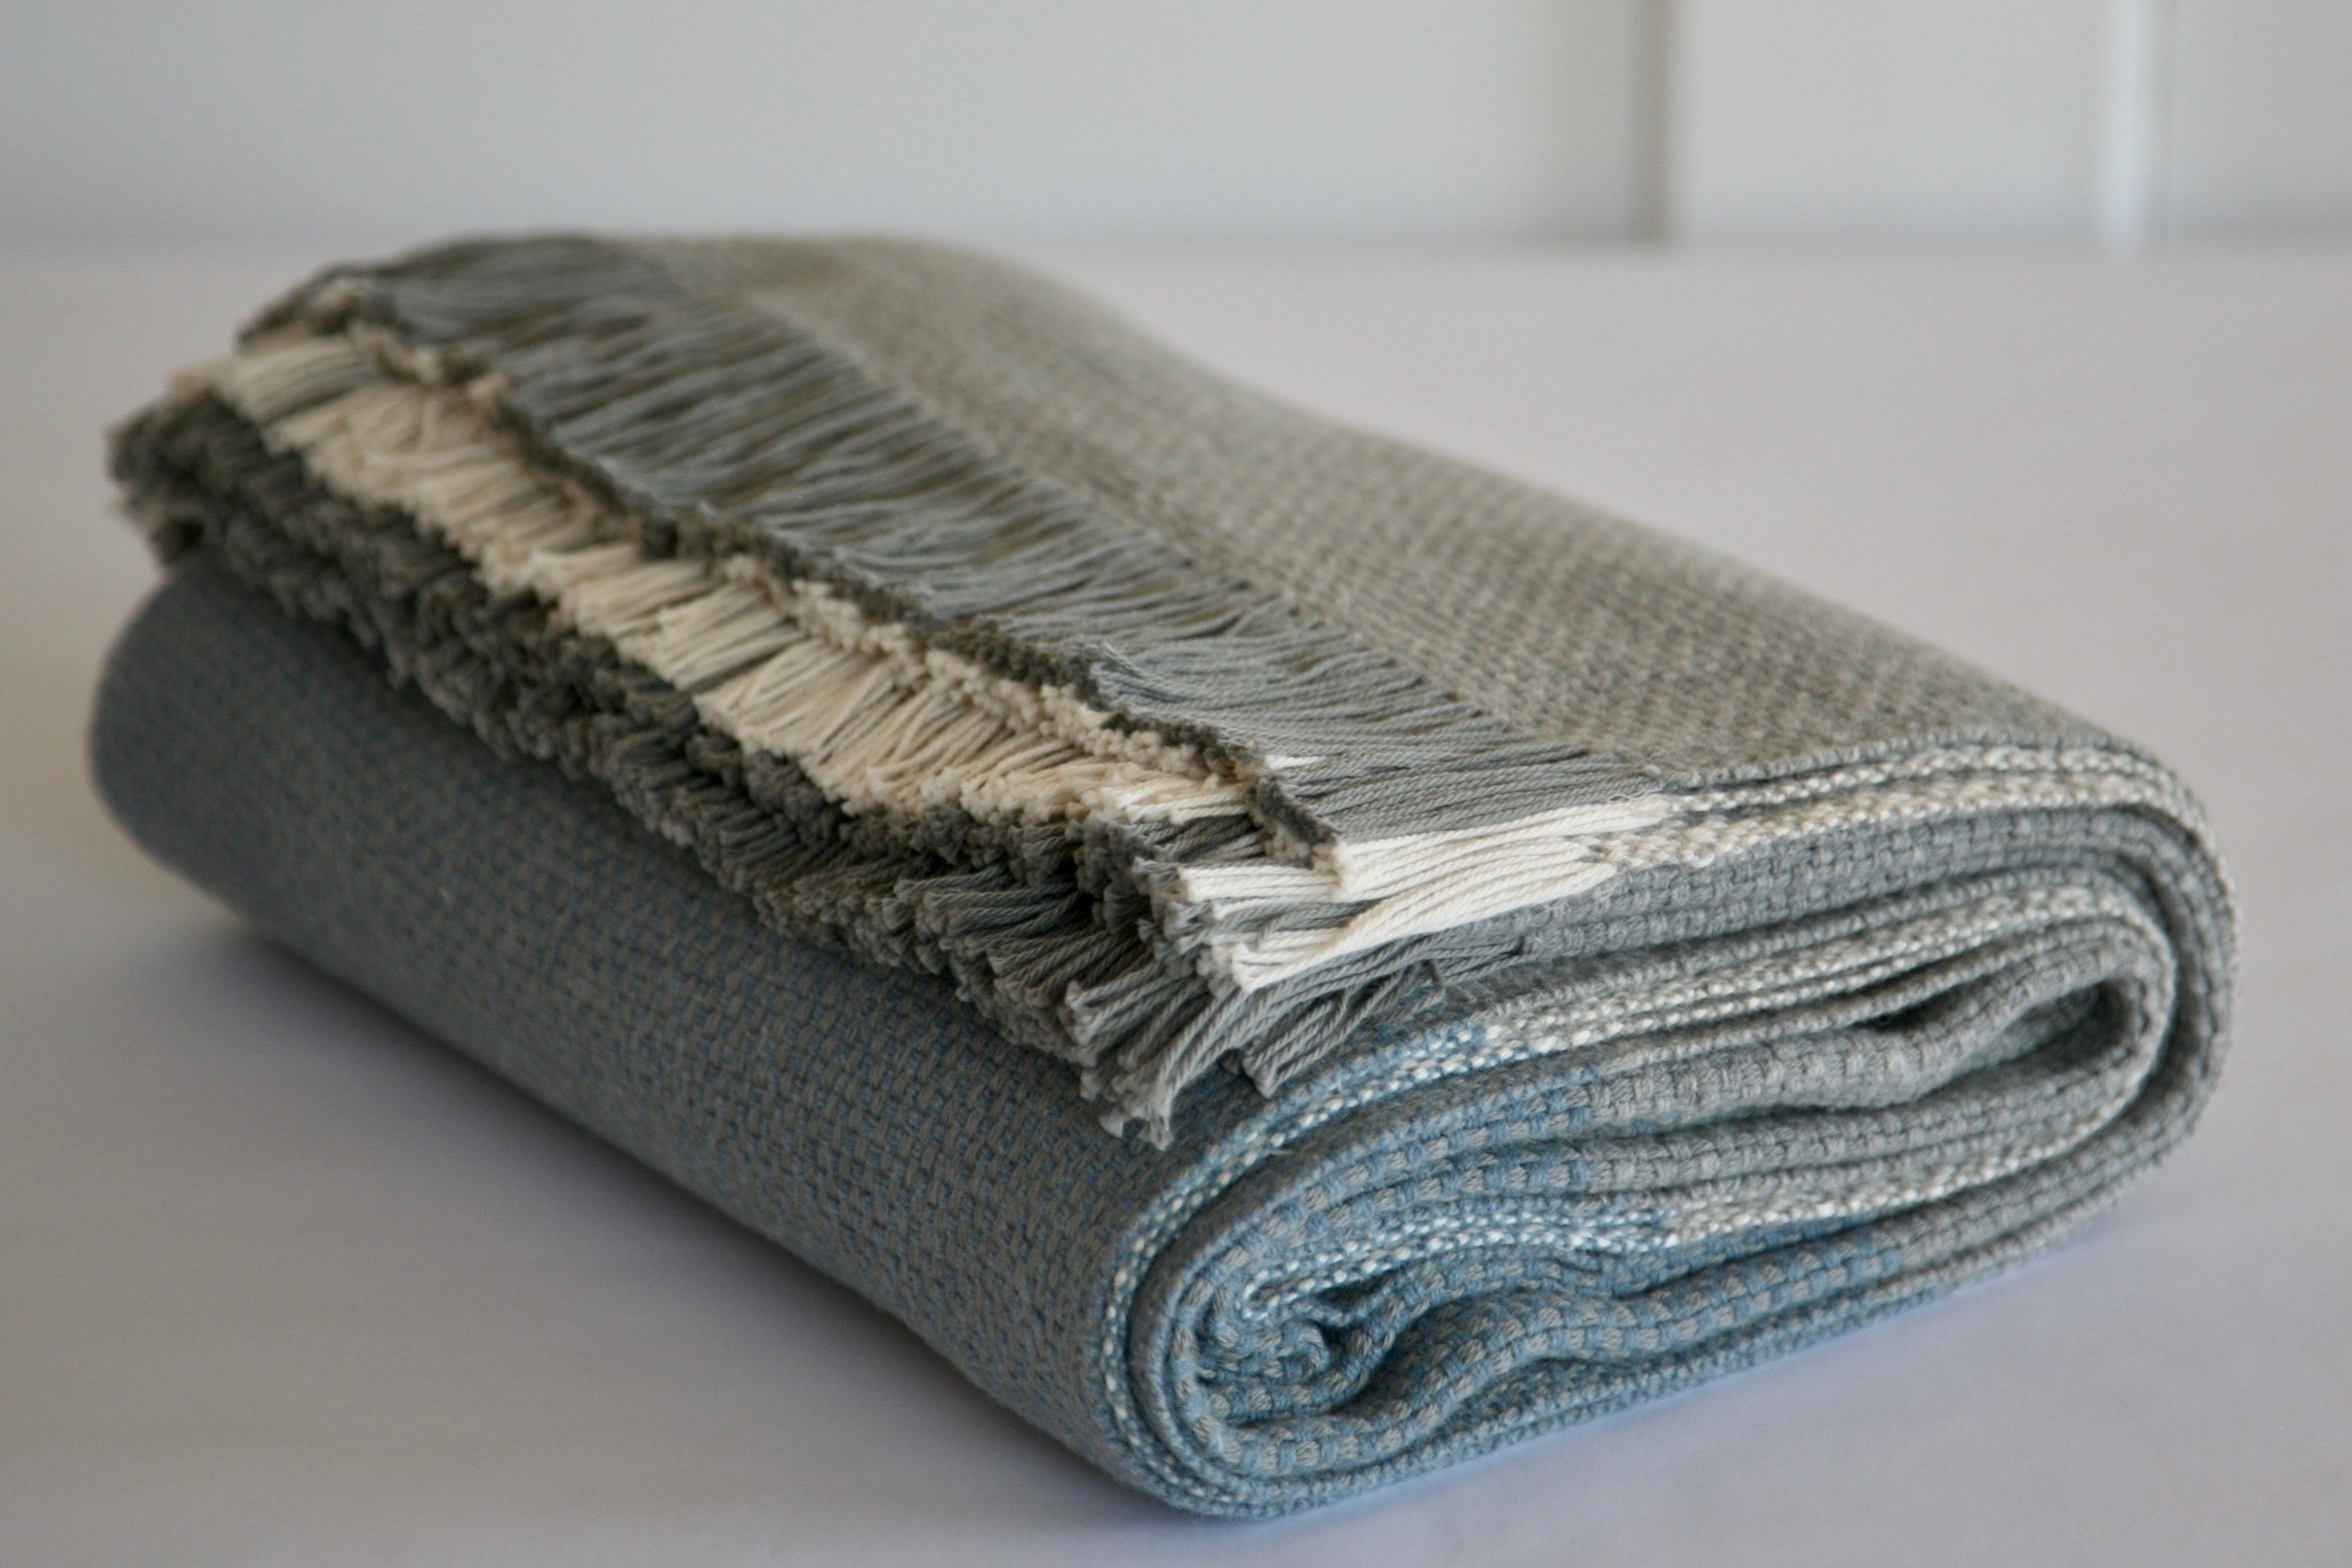 Wool/Cotton Colour Block Basketweave Blanket - Natural, Grey and Blue